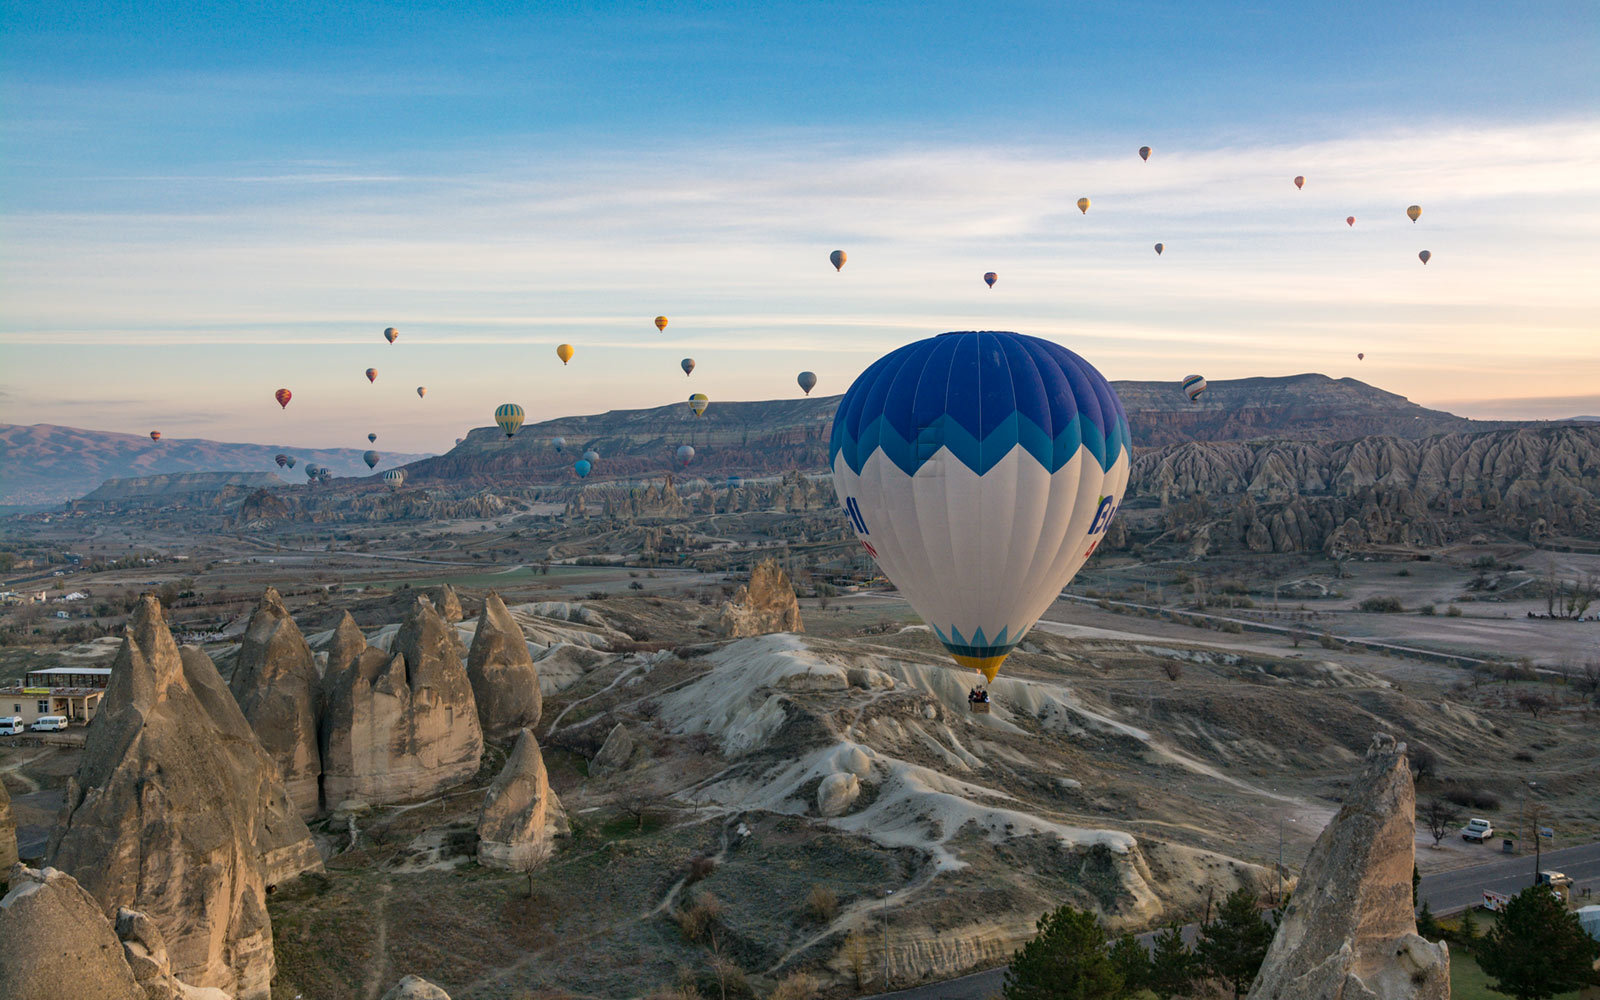 Hot Air Balloons, Rock Formations, Nevsehir, Cappadocia, Turkey